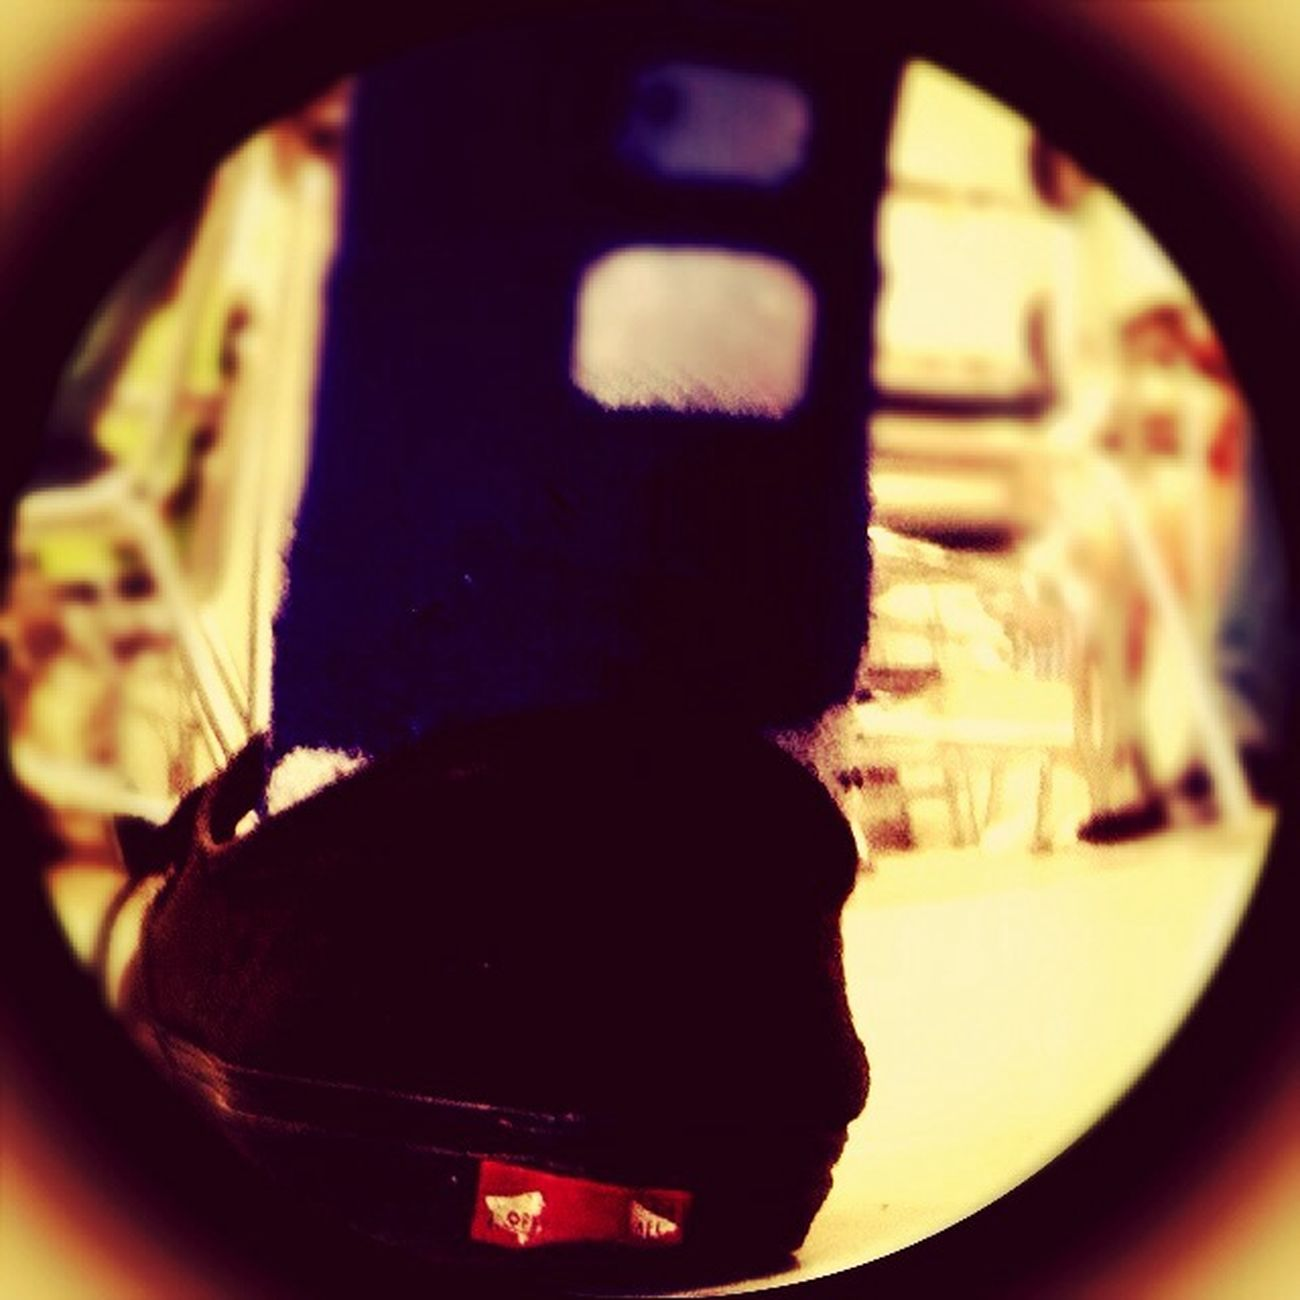 Van Nike Elite Socks  Fisheye In School